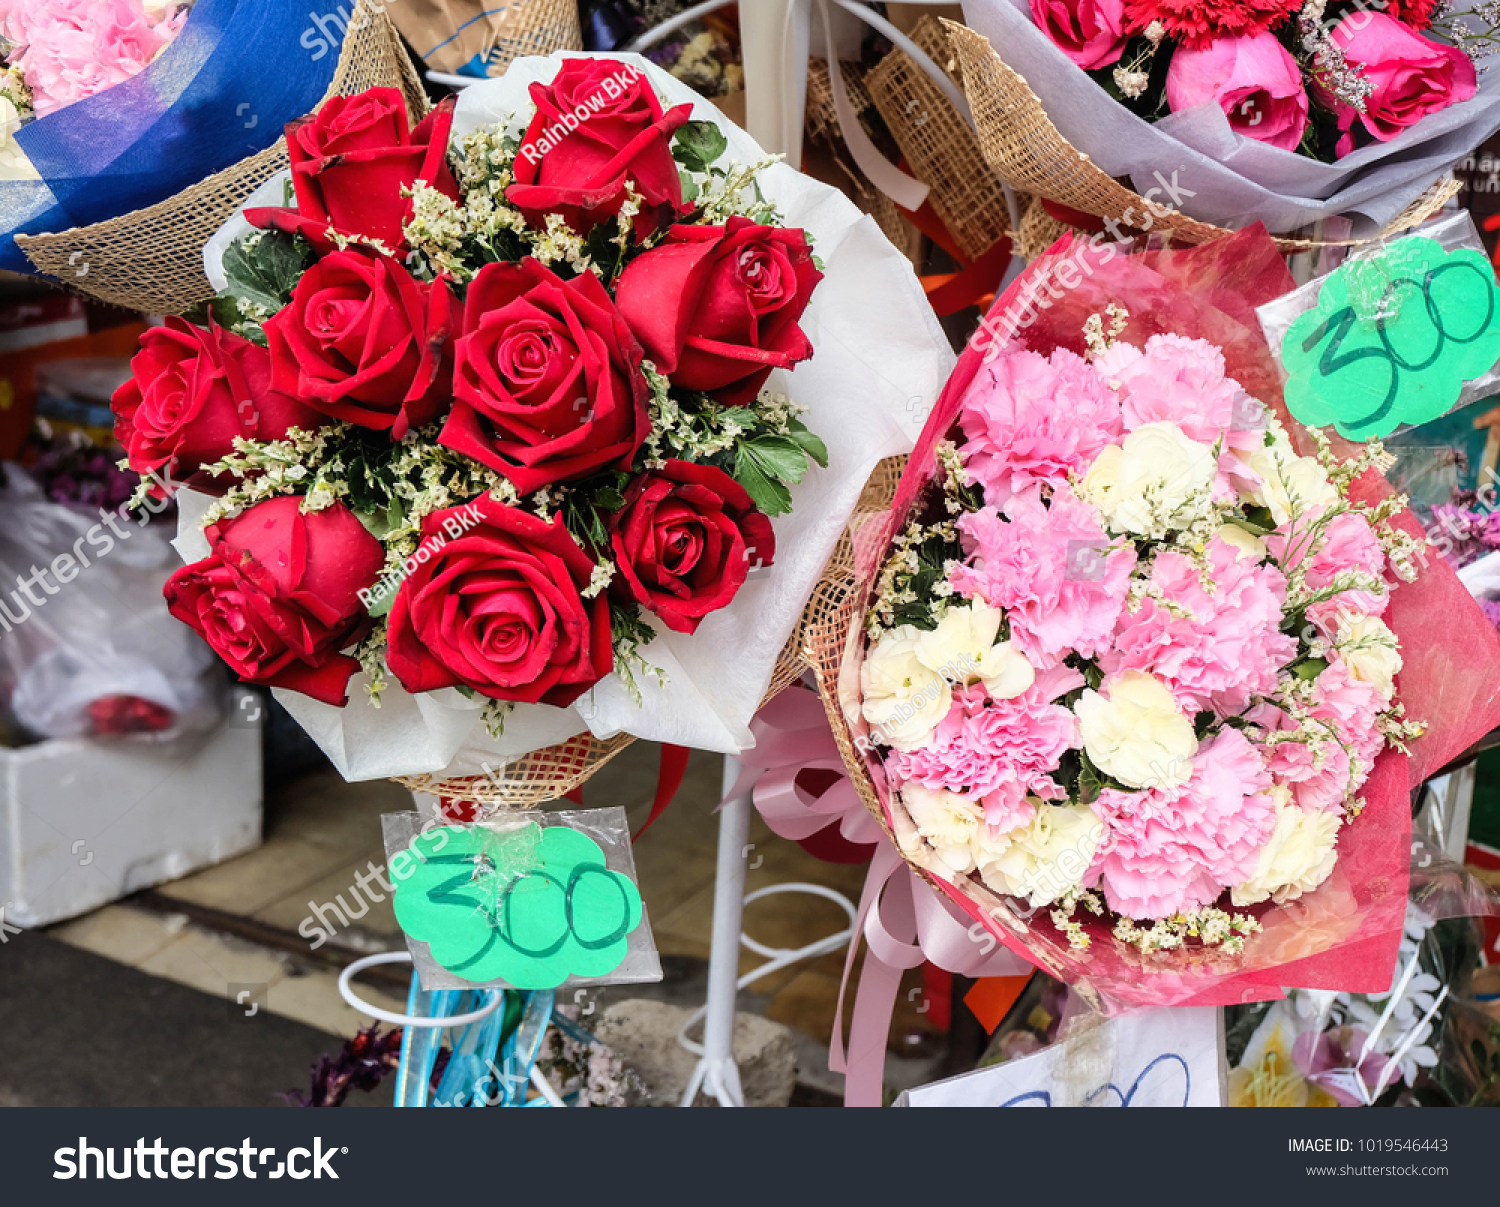 Bouquets Roses Carnation Selling Price Tag Stock Photo (100% Legal ...